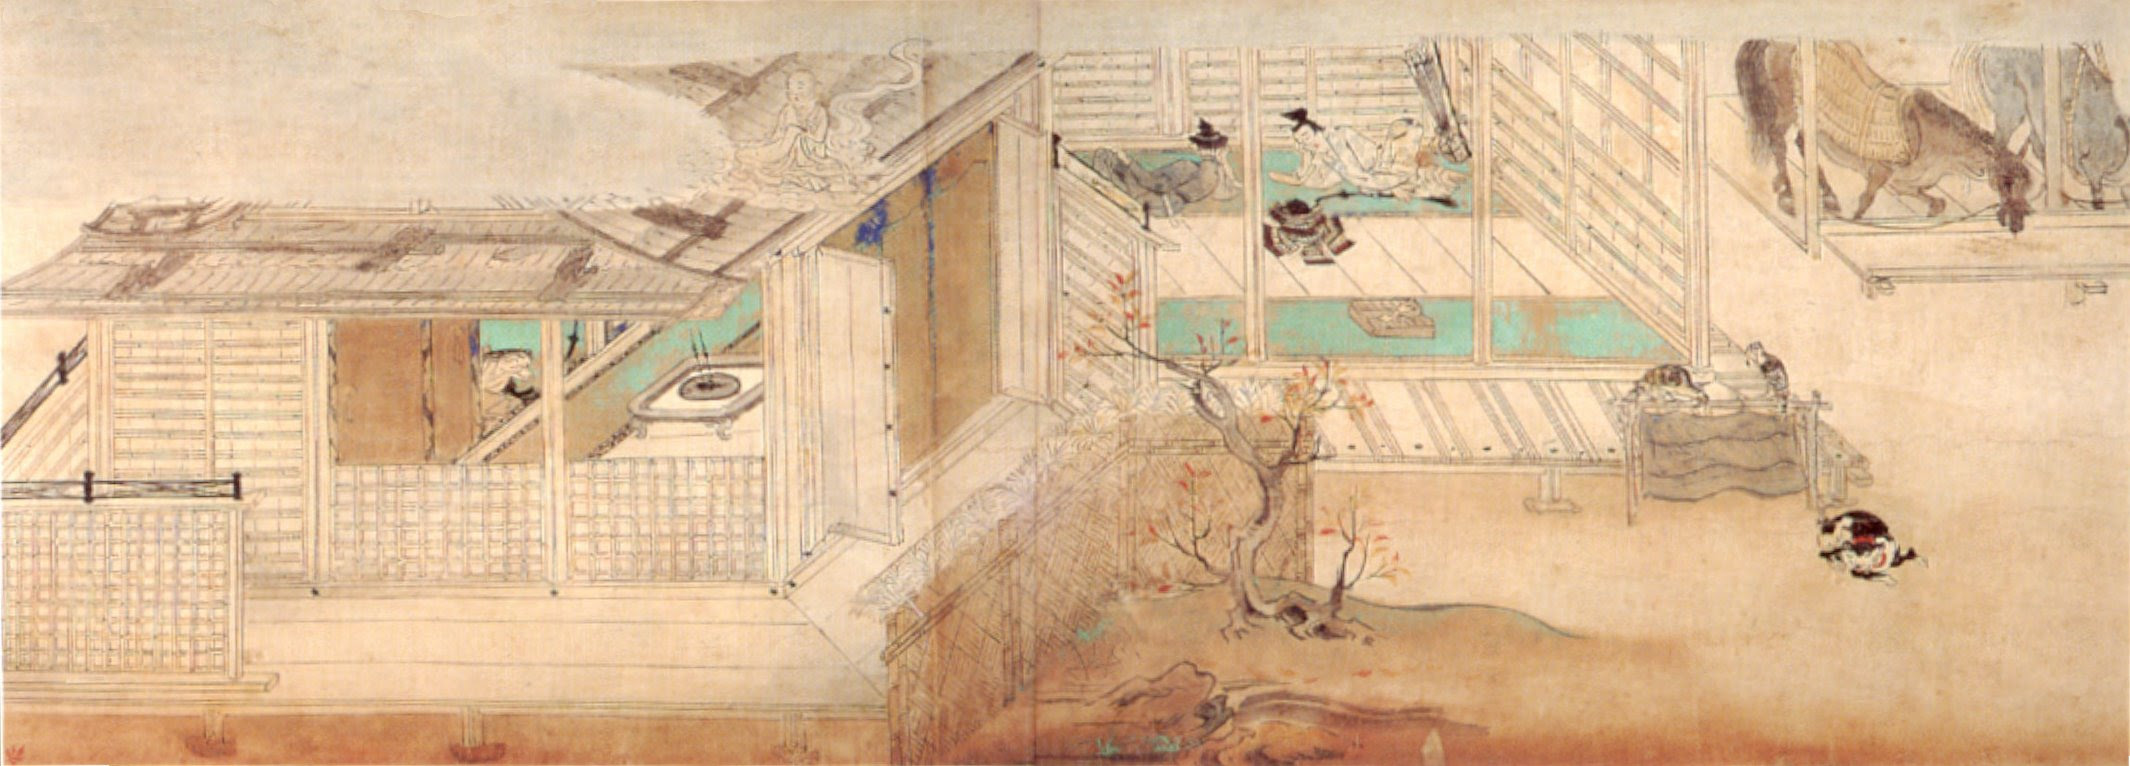 http://upload.wikimedia.org/wikipedia/commons/8/8d/Detail_of_%27K%C3%B4b%C3%B4_Daishi_gy%C3%B4j%C3%B4_emaki%27_%28Events_in_the_Life_of_K%C3%B4b%C3%B4_Daishi_-K%C3%BBkai-%29%2C_late_13th_or_early_14th_century.jpg